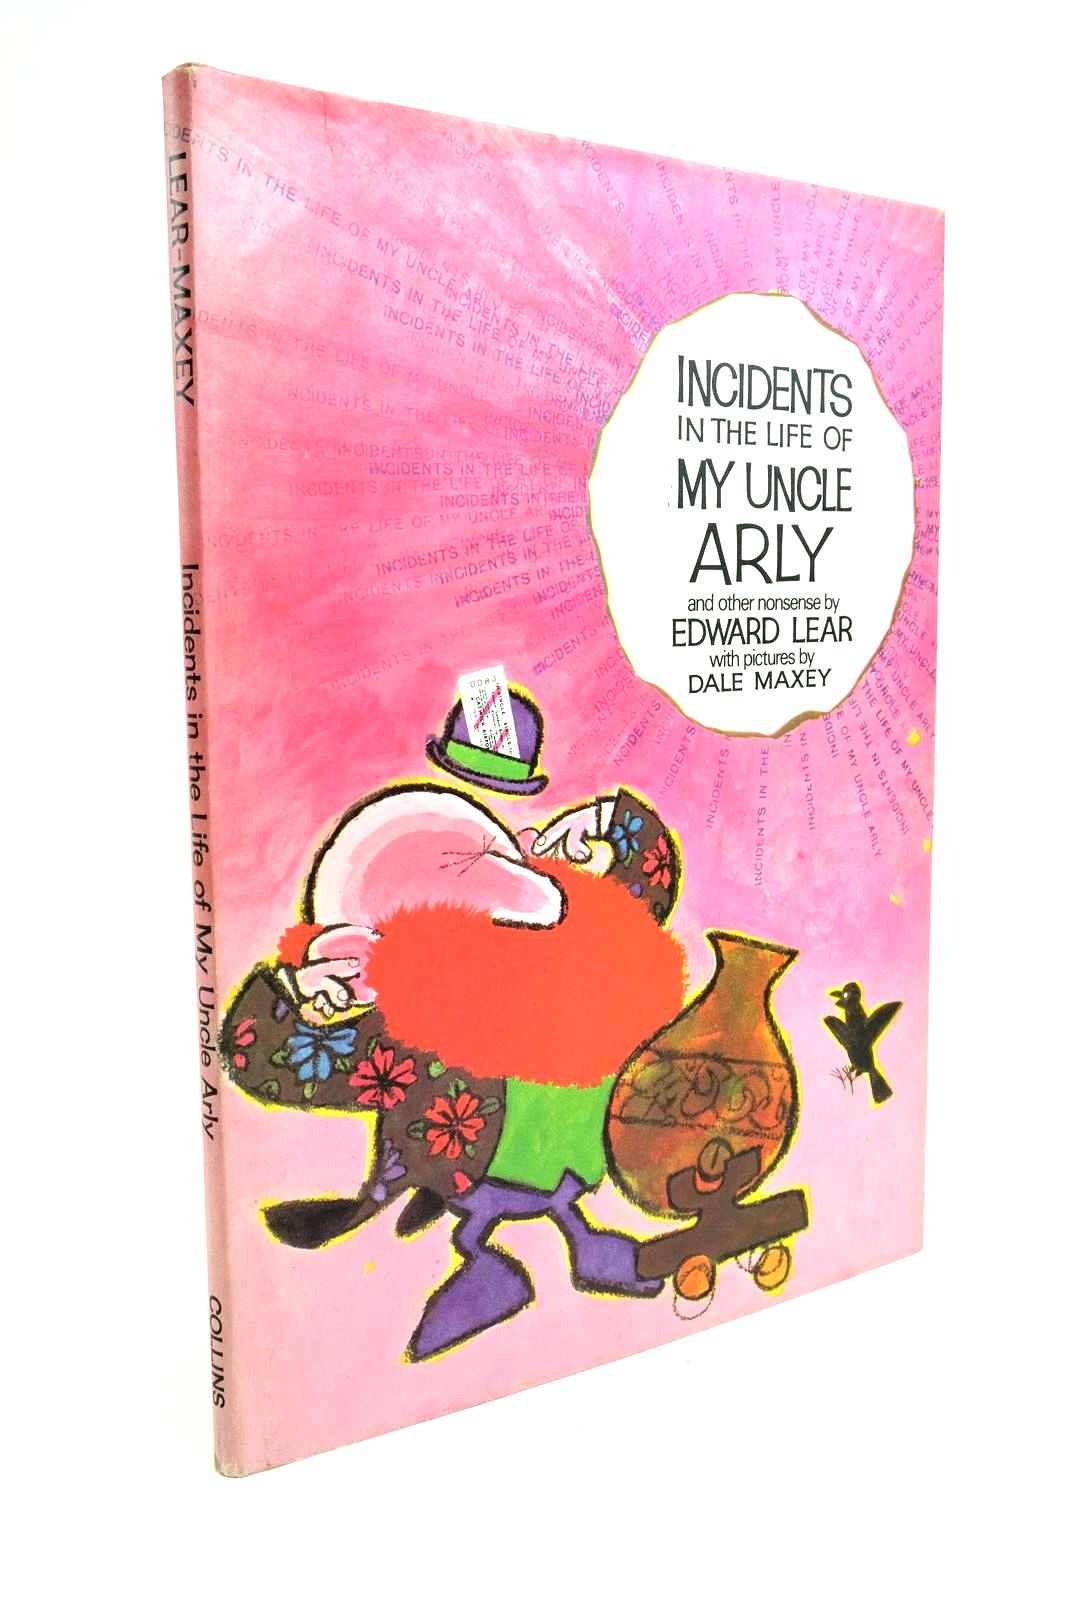 Photo of INCIDENTS IN THE LIFE OF MY UNCLE ARLY written by Lear, Edward illustrated by Maxey, Dale published by Collins (STOCK CODE: 1321691)  for sale by Stella & Rose's Books